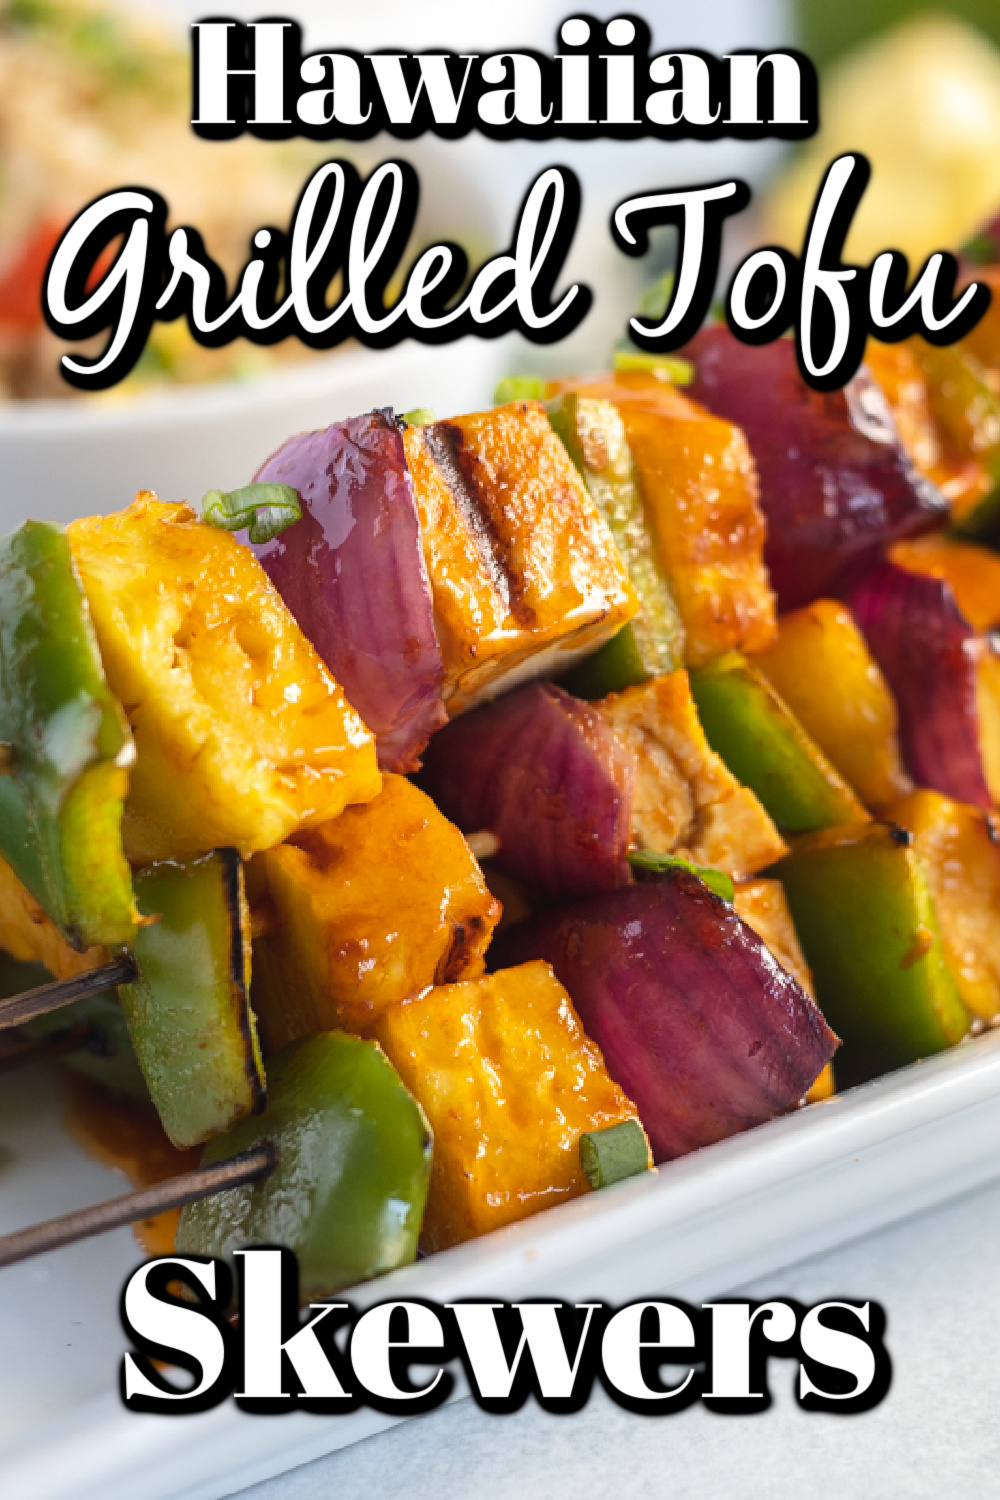 These Hawaiian Grilled Tofu Skewers have a super tangy flavor and are a healthy option you can make on your grill!